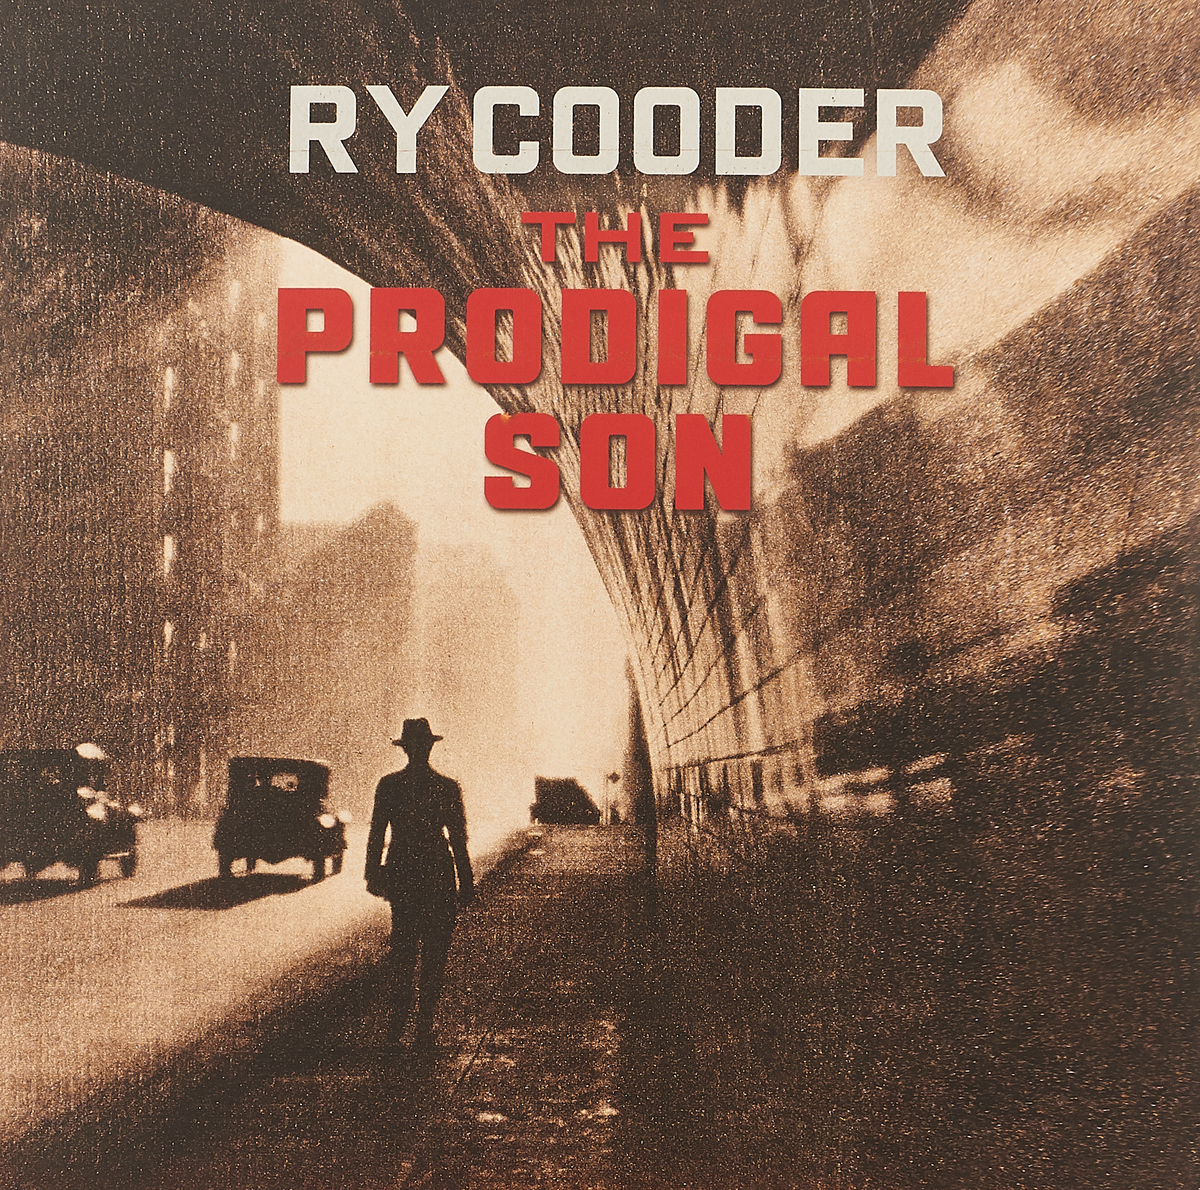 Рай Кудер Ry Cooder. The Prodigal Son (LP) iron maiden – seventh son of a seventh son lp